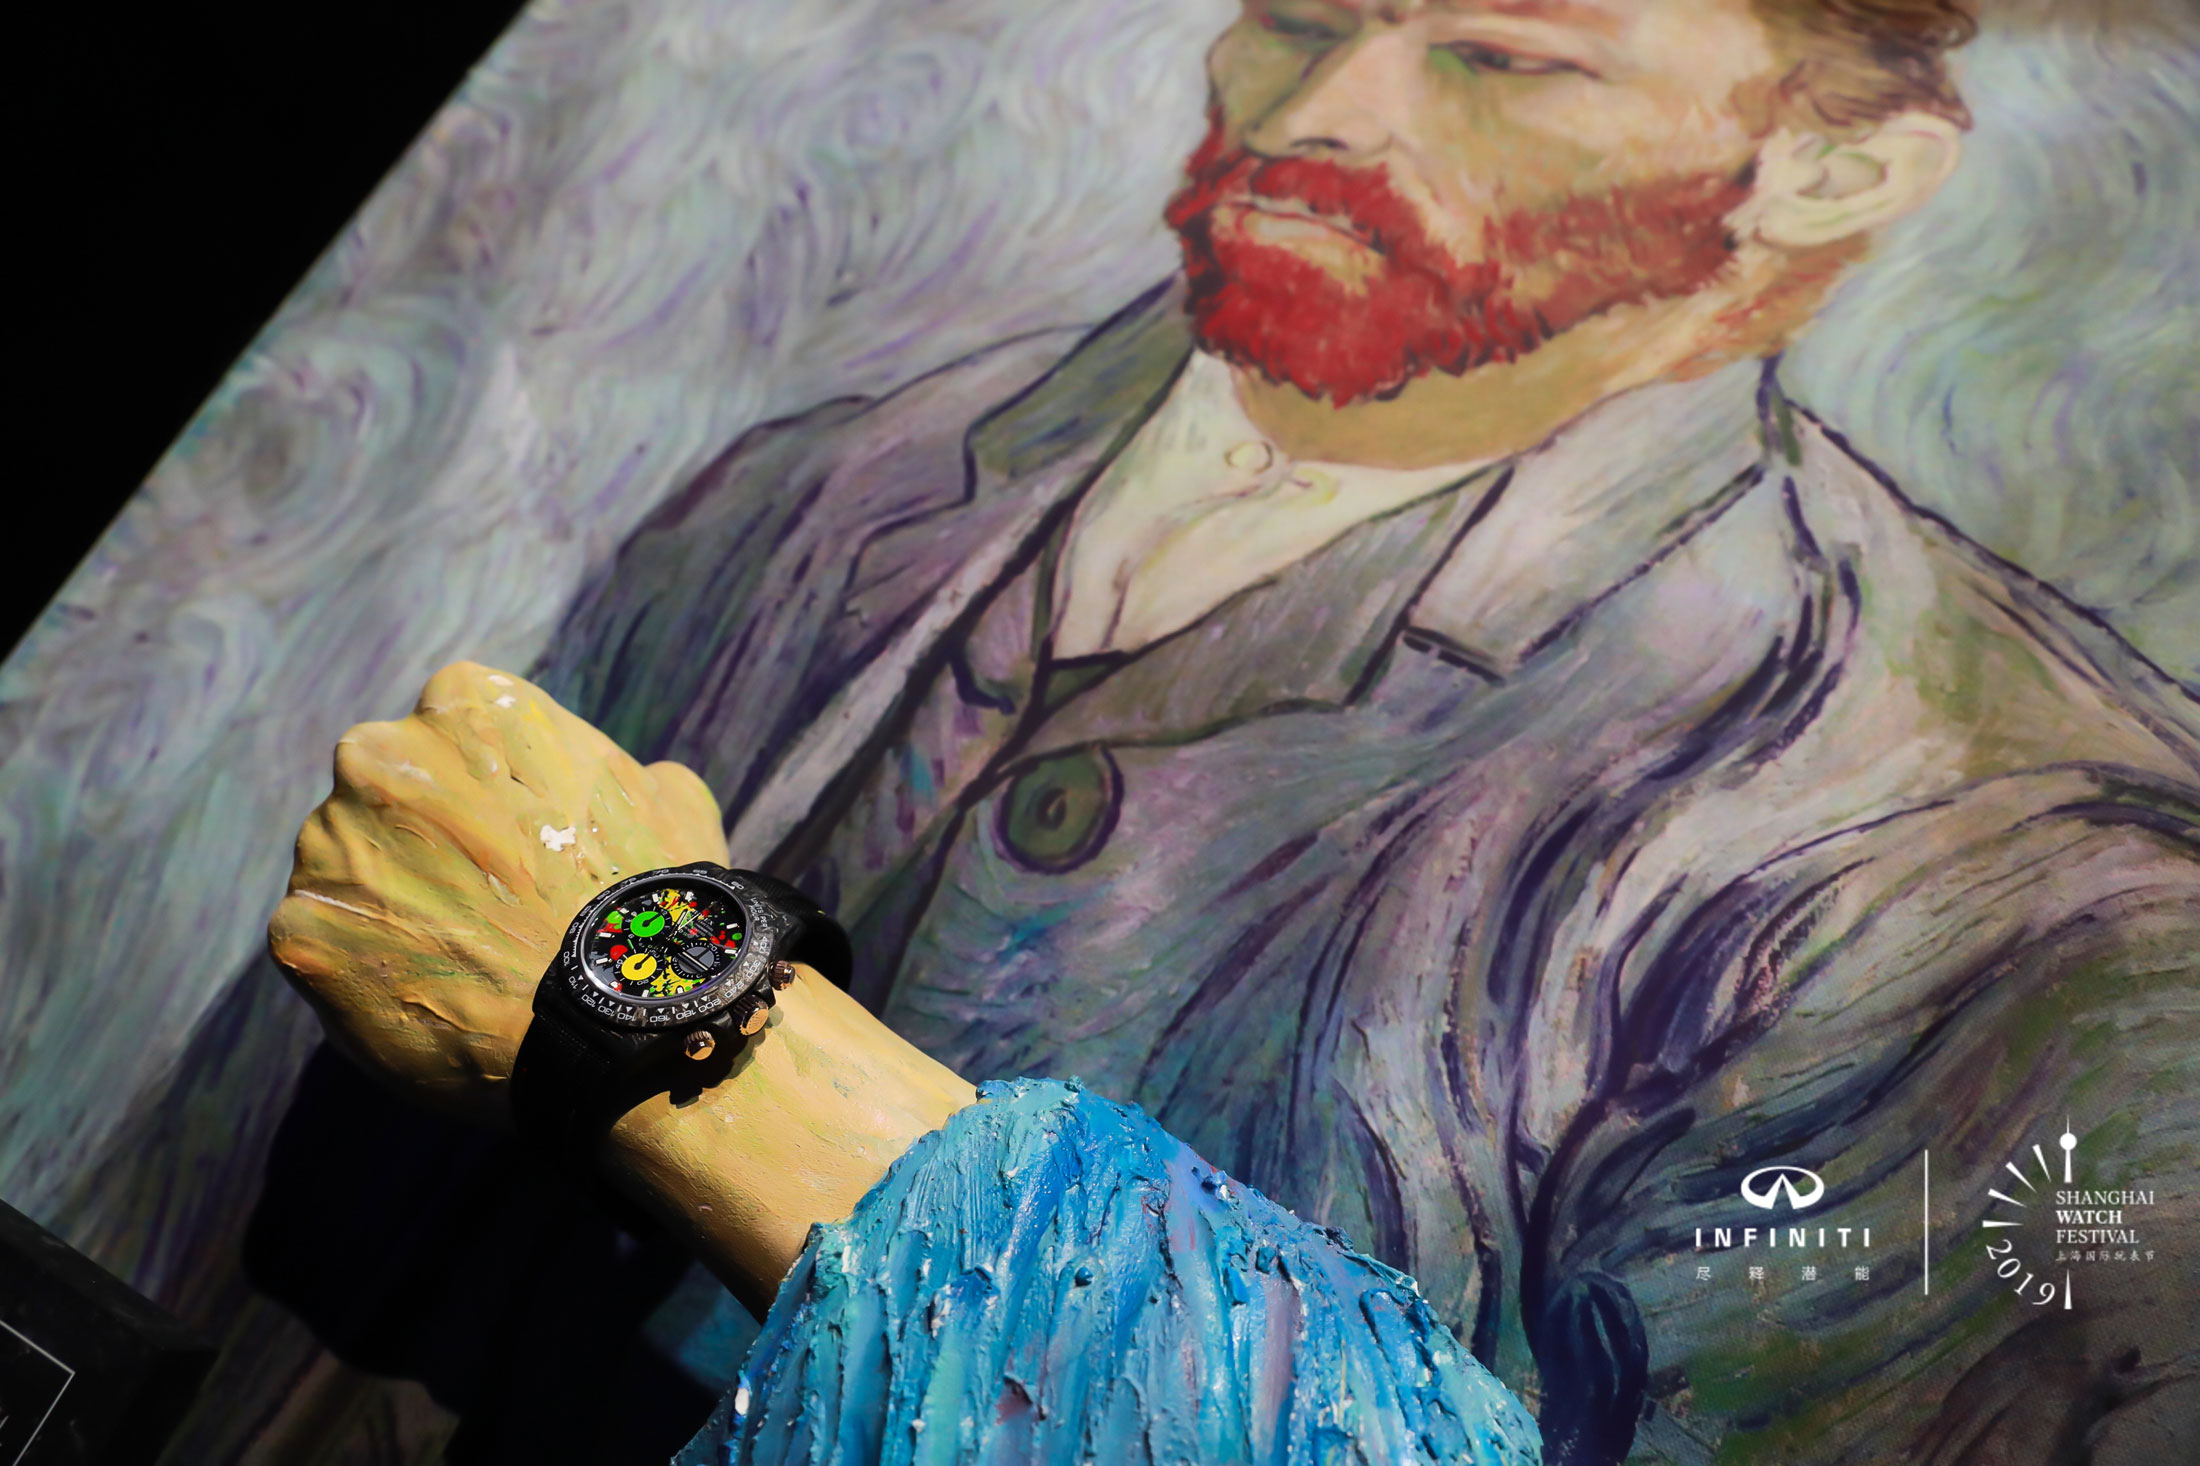 Shanghai Watch Festival: when collectors get together